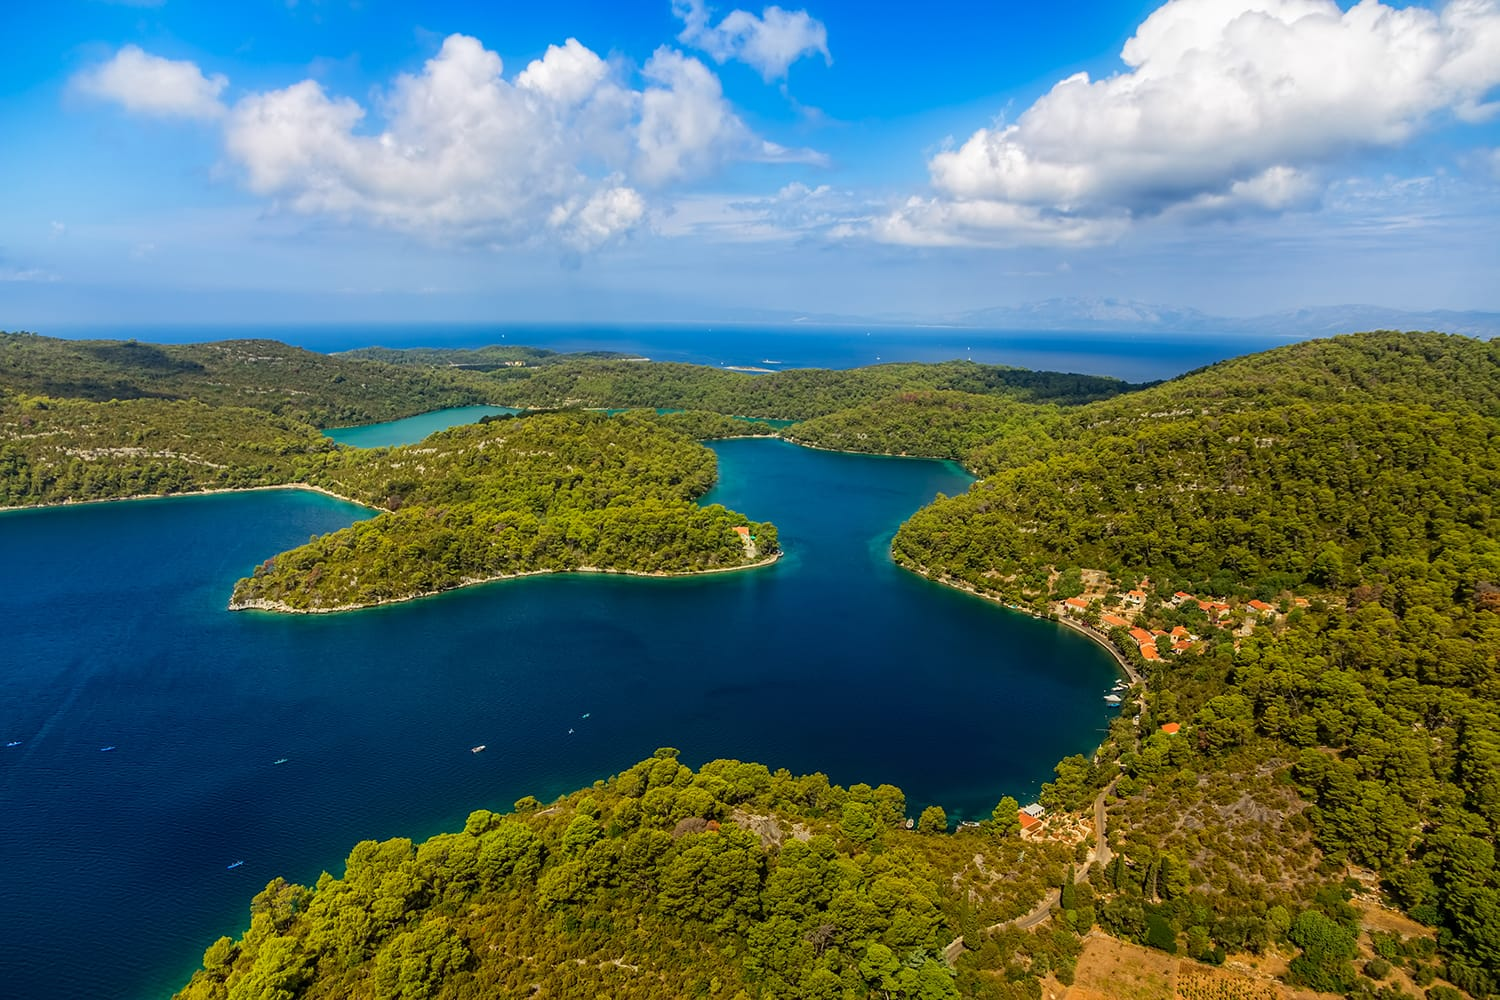 Aerial helicopter shoot of National park on island Mljet, Dubrovnik archipelago, Croatia